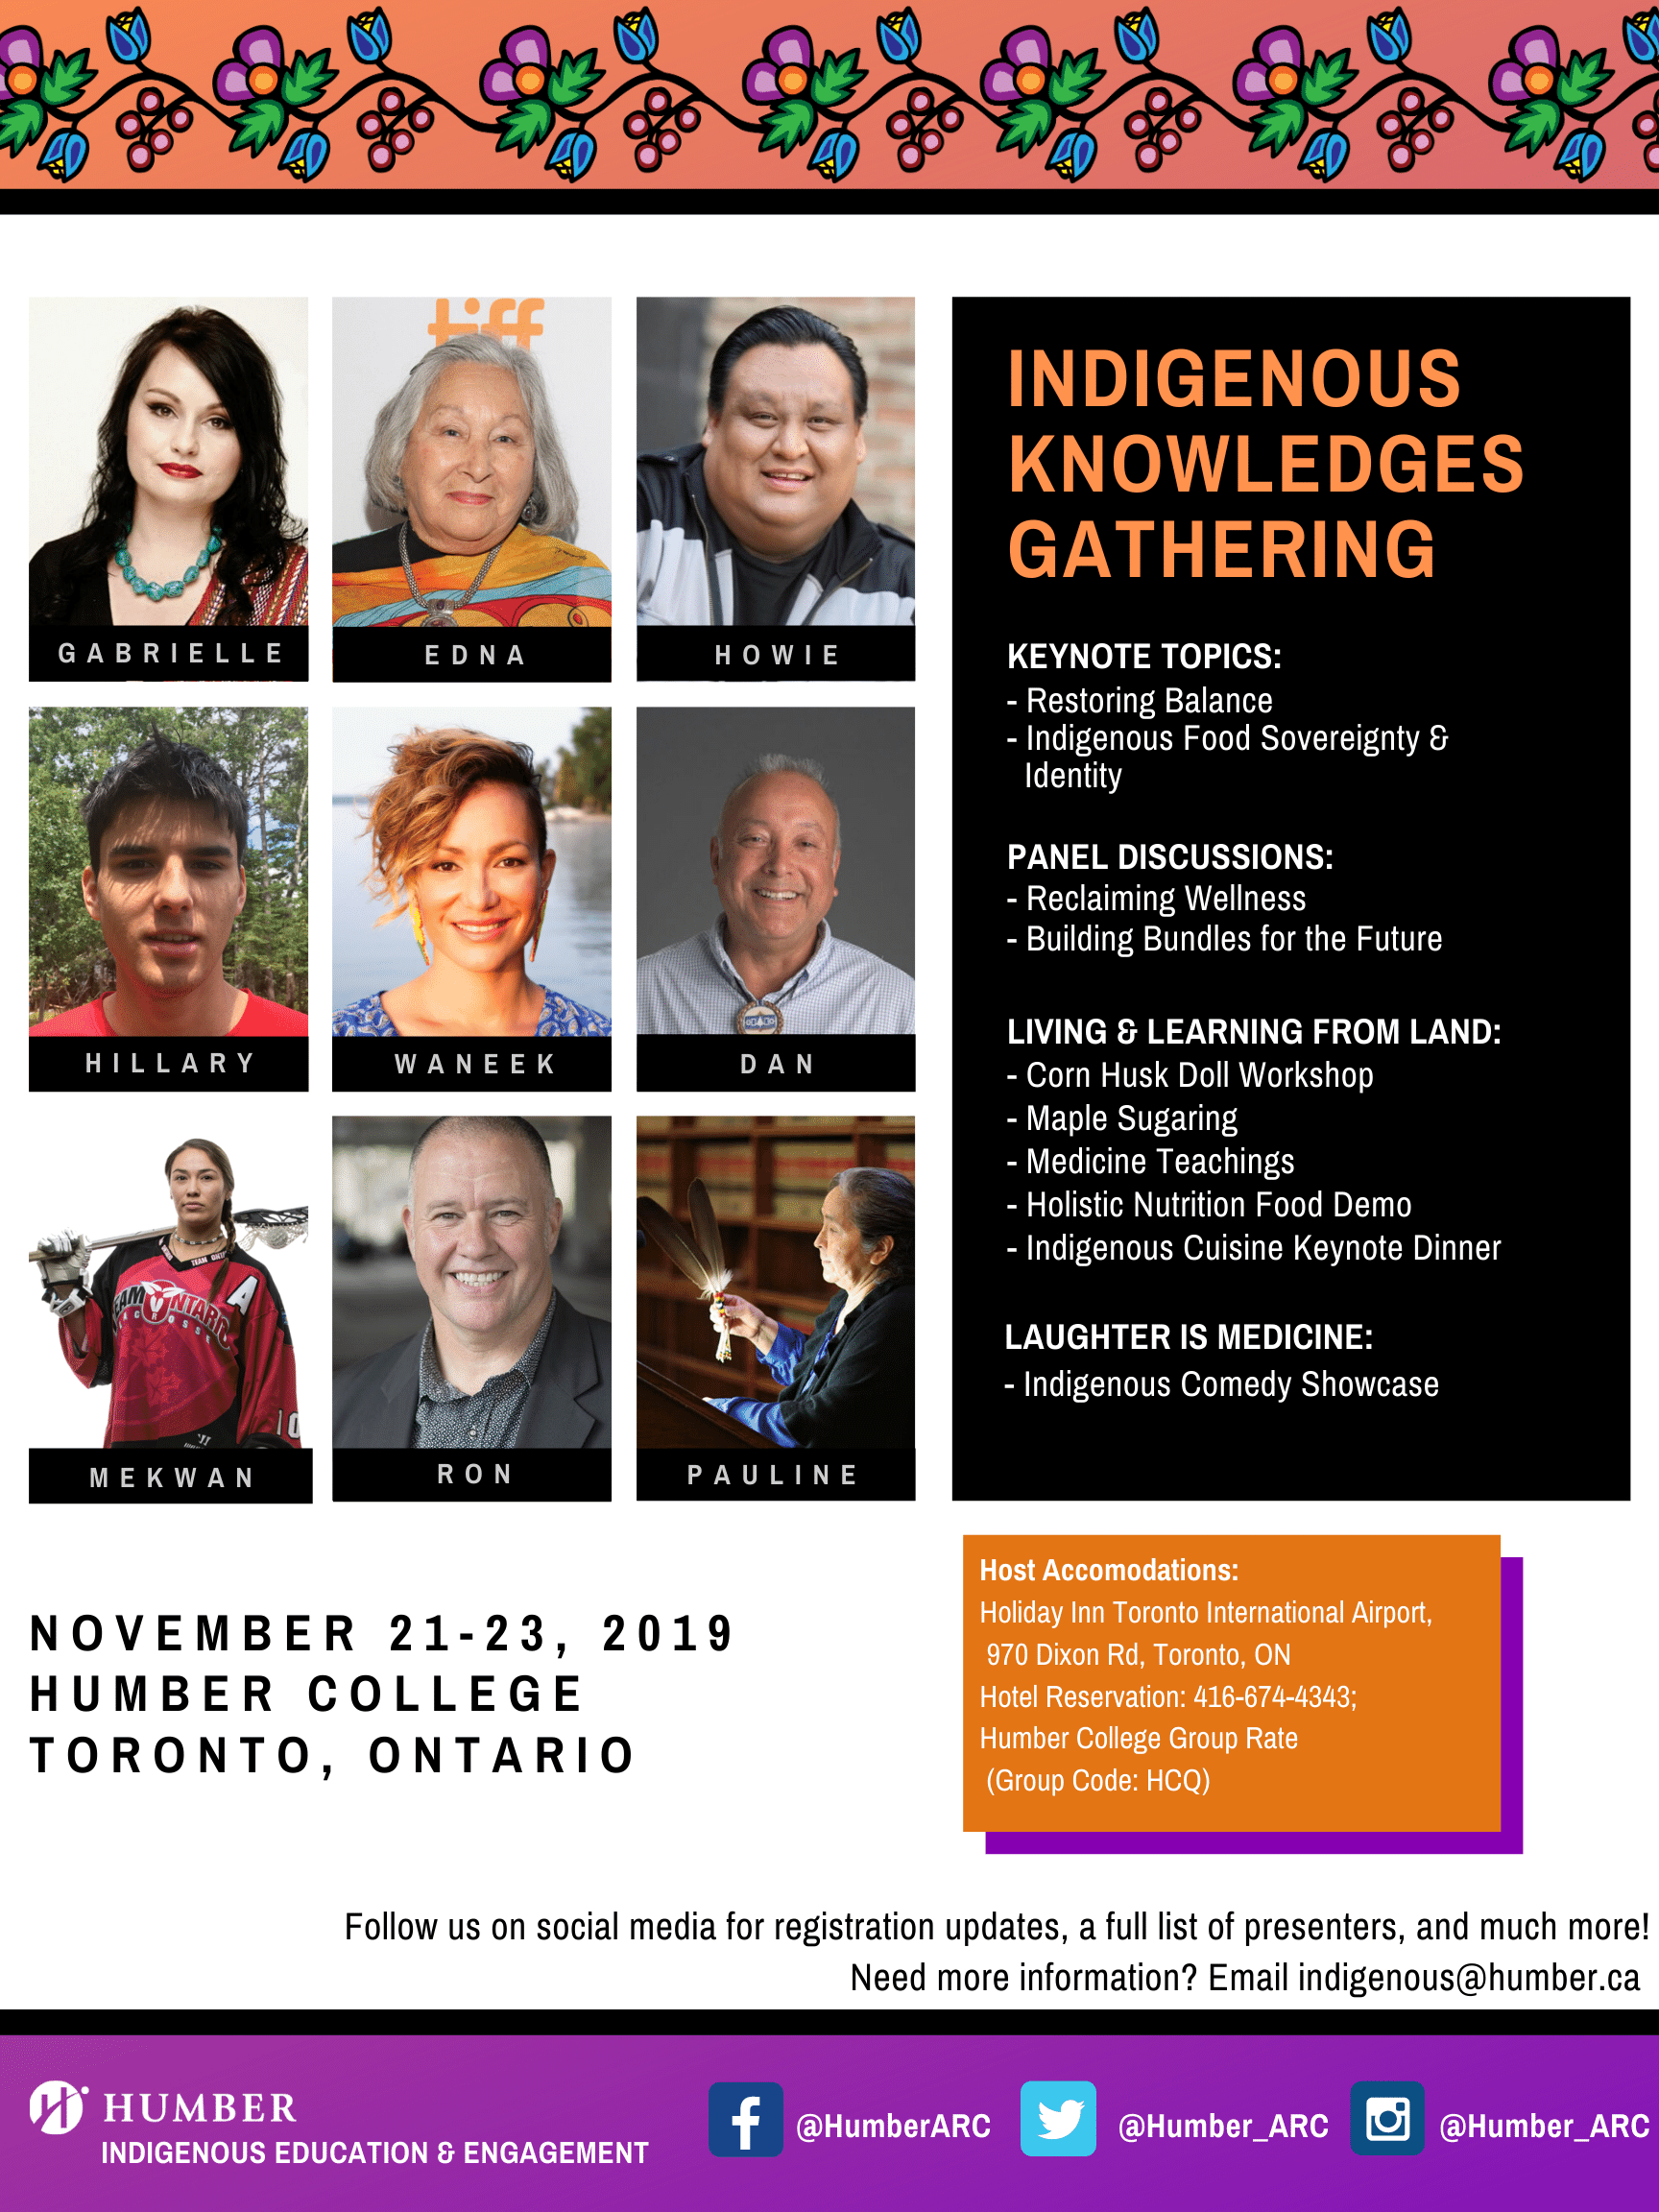 Indigenous Knowledge Gathering at Humber College